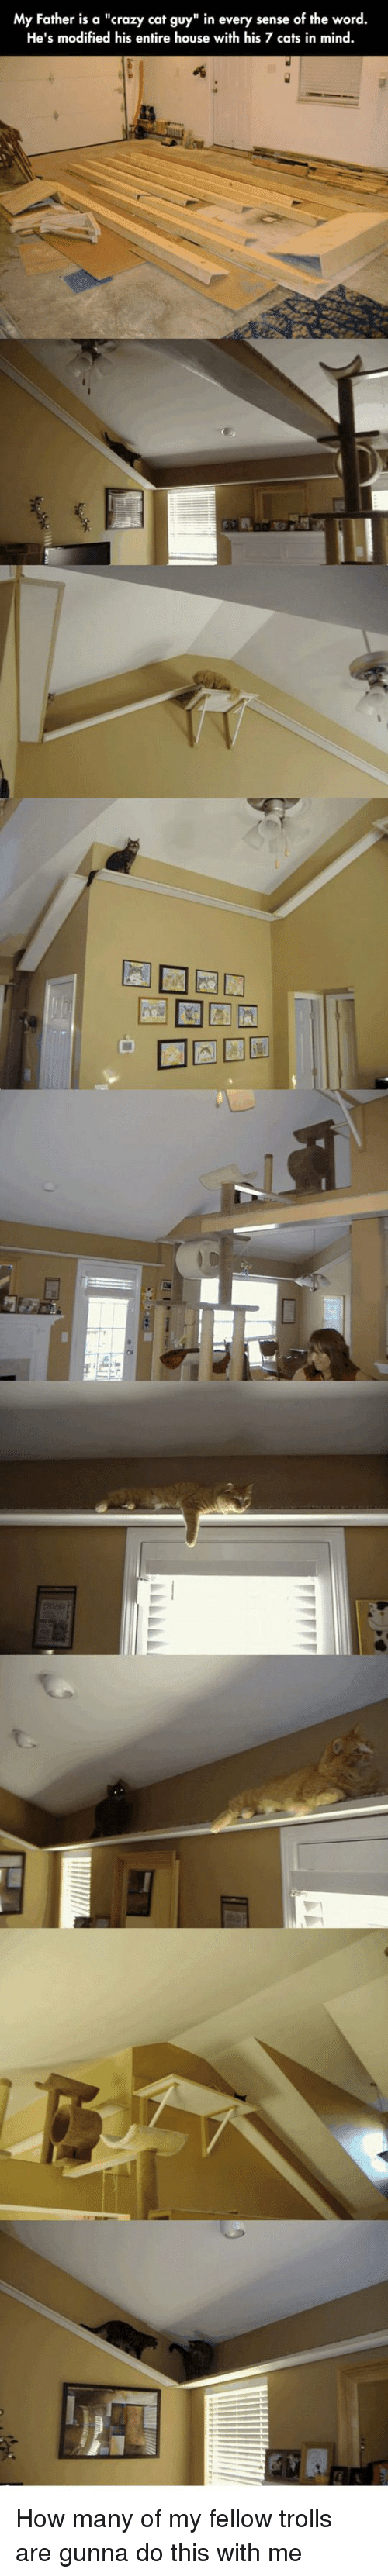 """Cats, Crazy, and House: My Father is a """"crazy cat guy"""" in every sense of the word.  He's modified his entire house with his 7 cats in mind How many of my fellow trolls are gunna do this with me"""